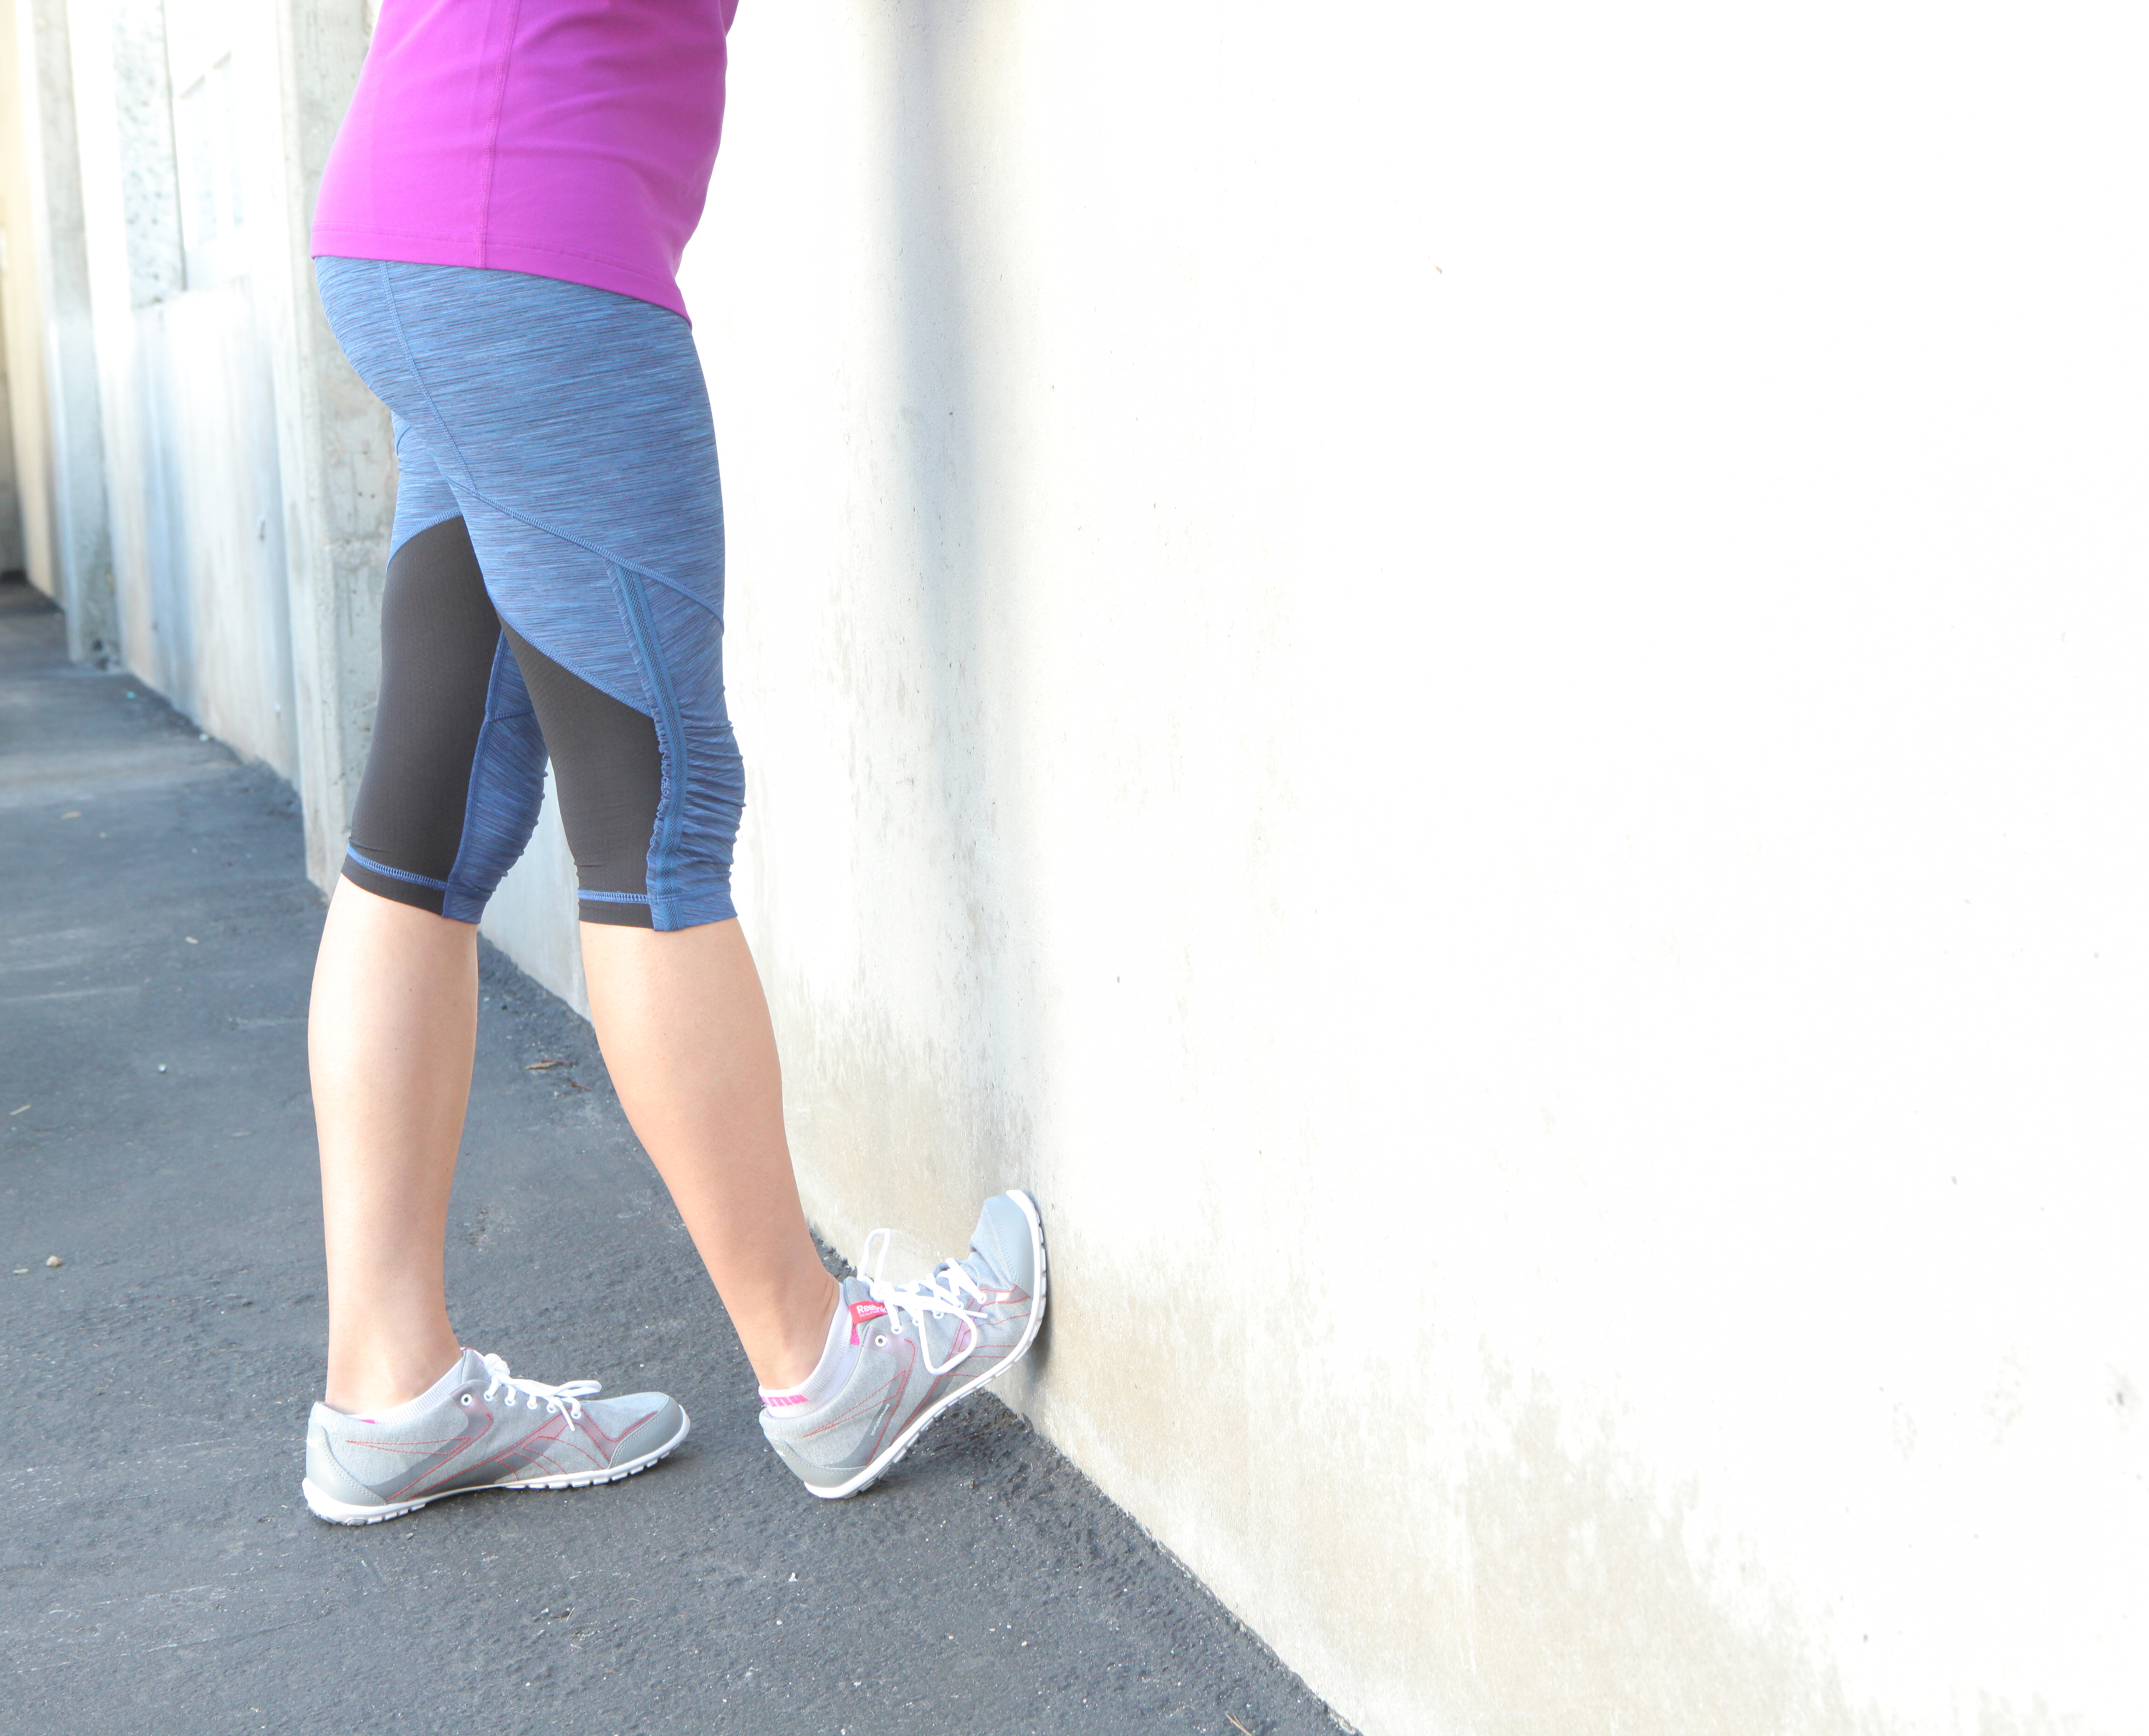 Wall Or Curb Stretch 5 Ways To Stretch Your Calves A